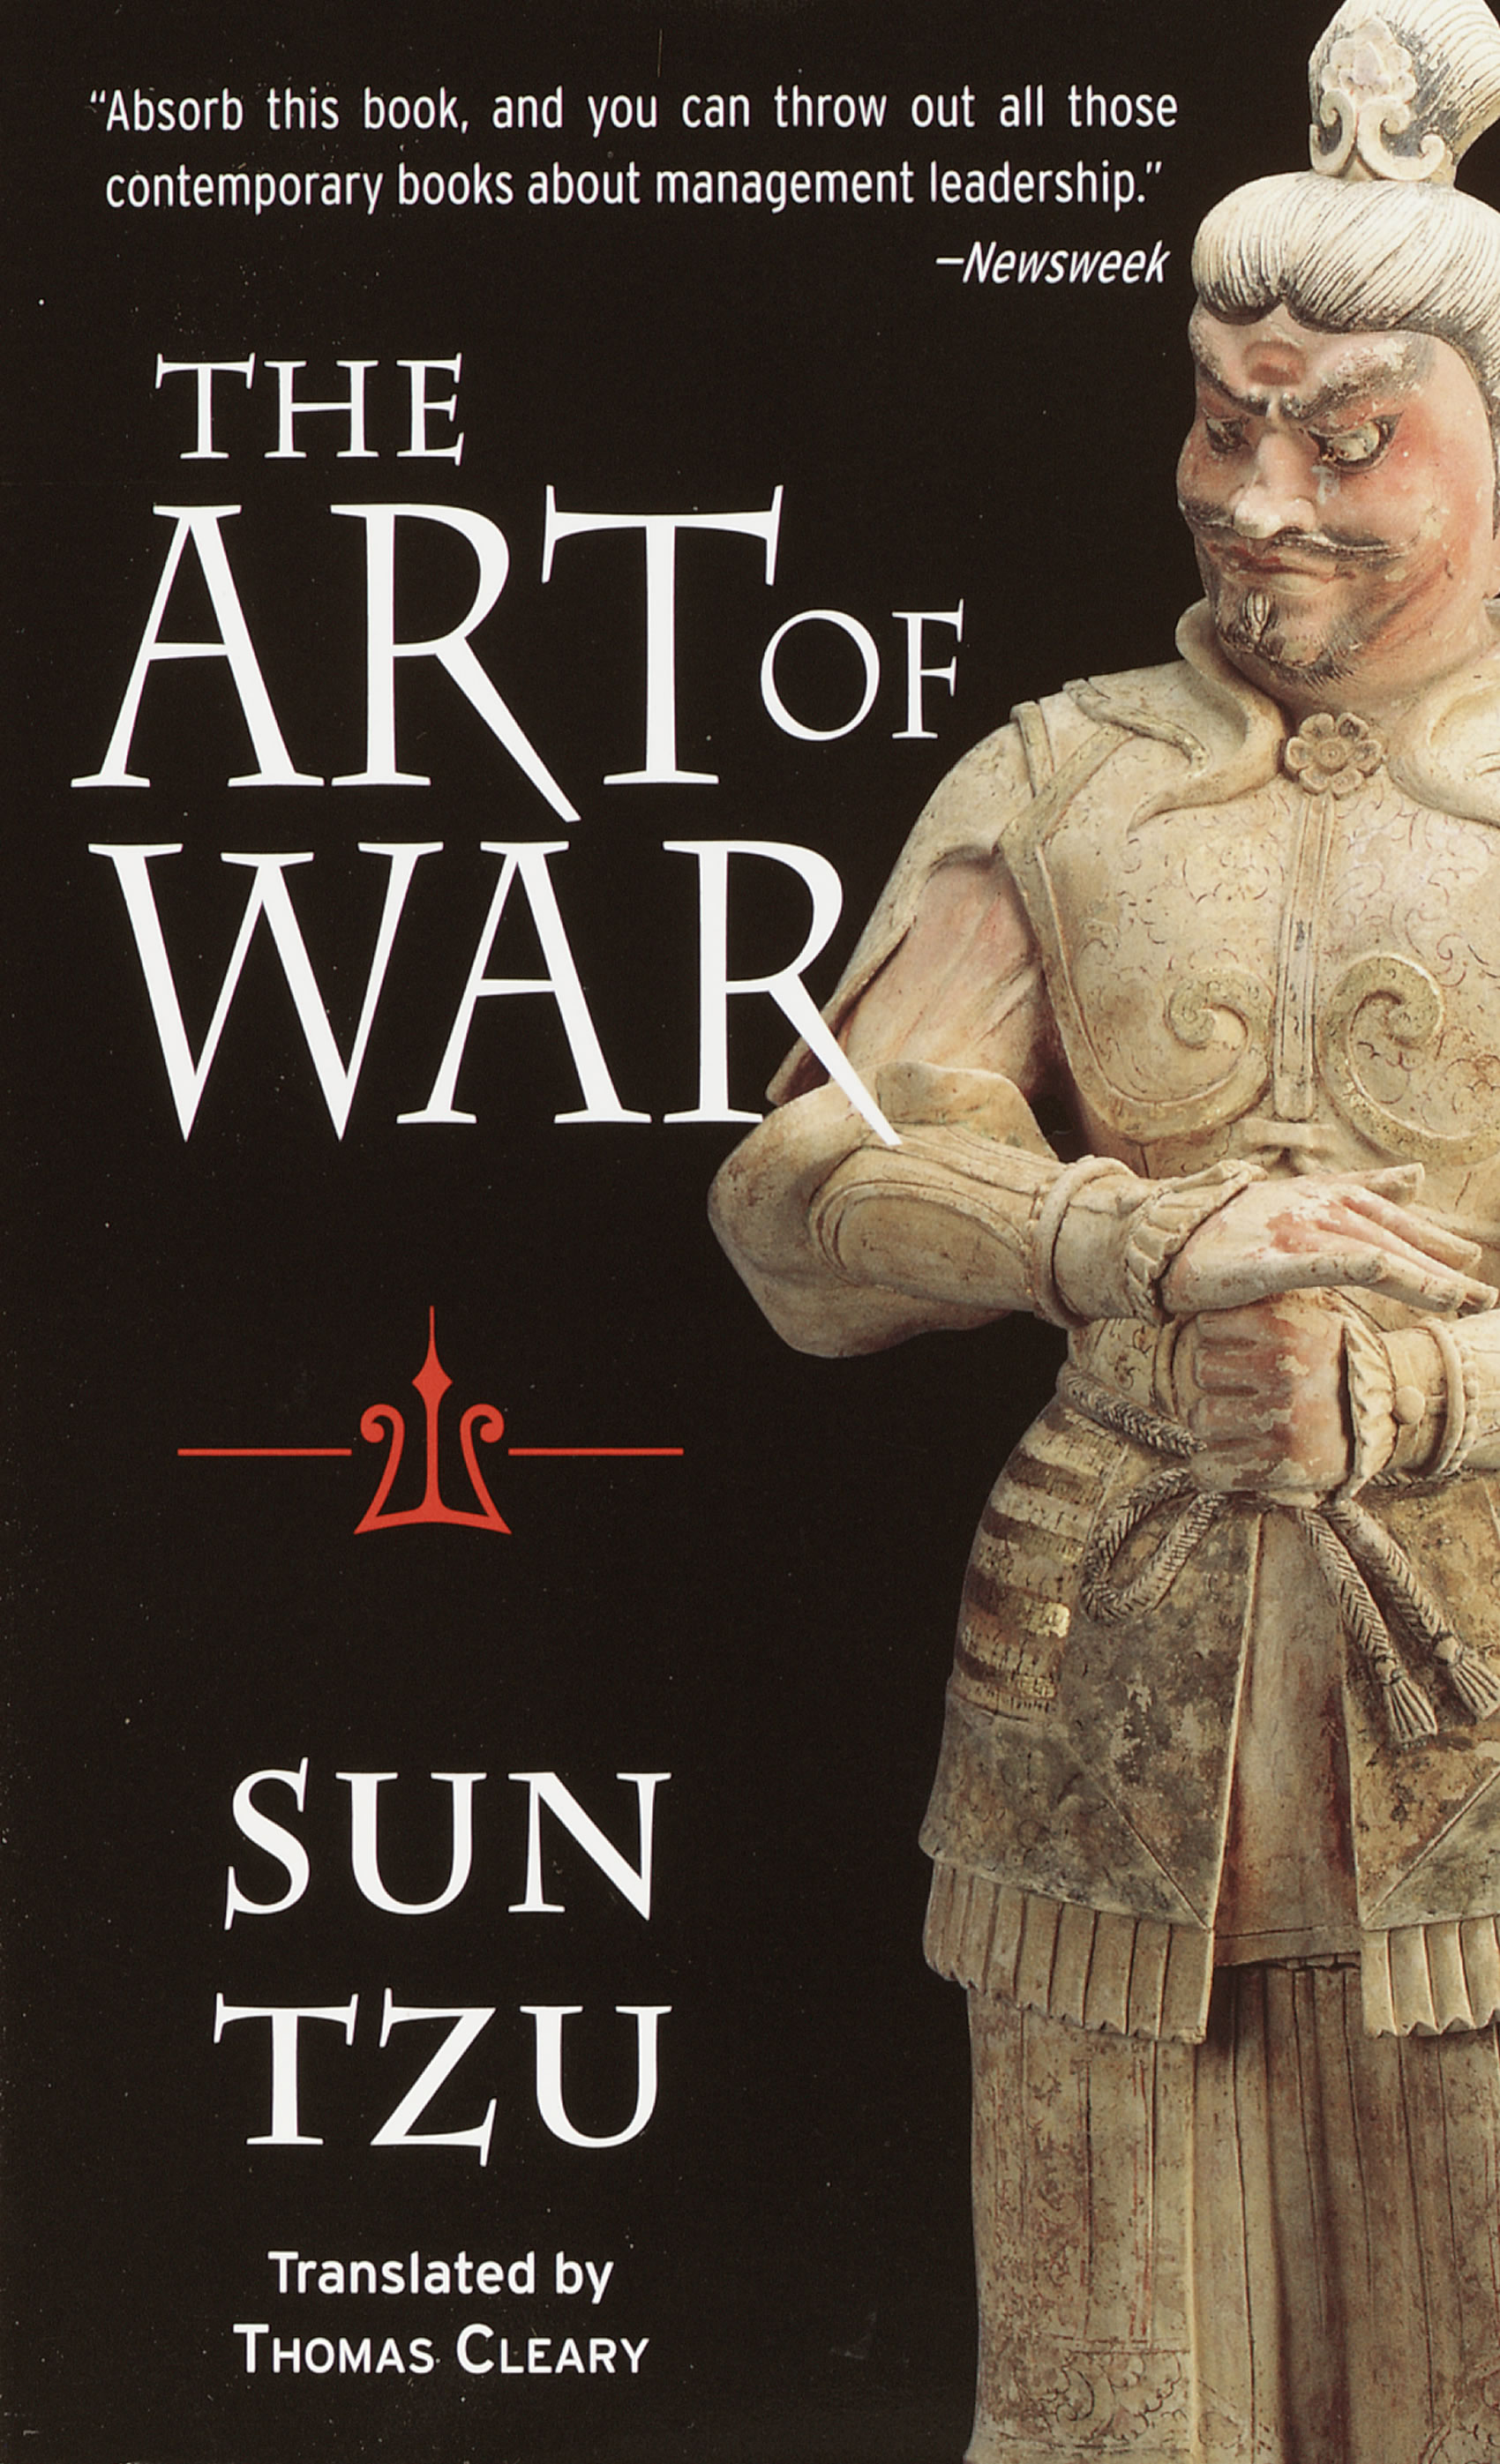 The art of war by Sun Tzu - Image supplied by Penguin Random House